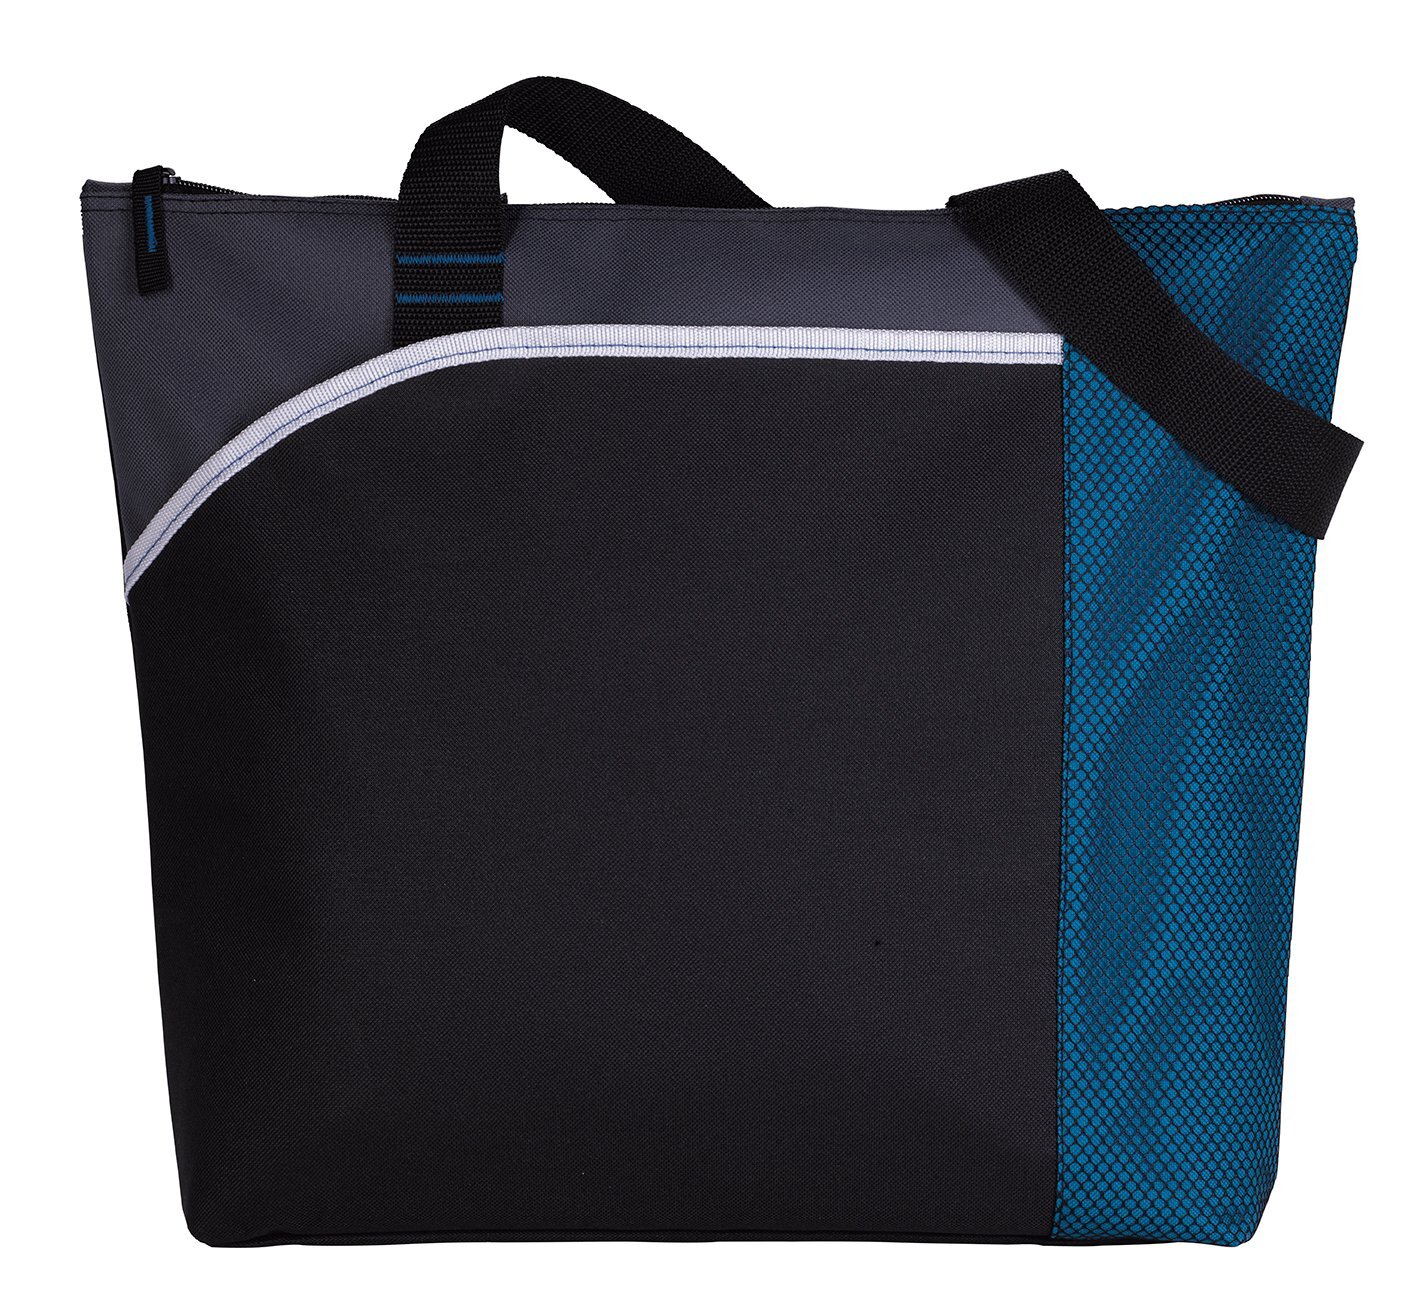 Atchison Marley Mesh 600D Tote Bag